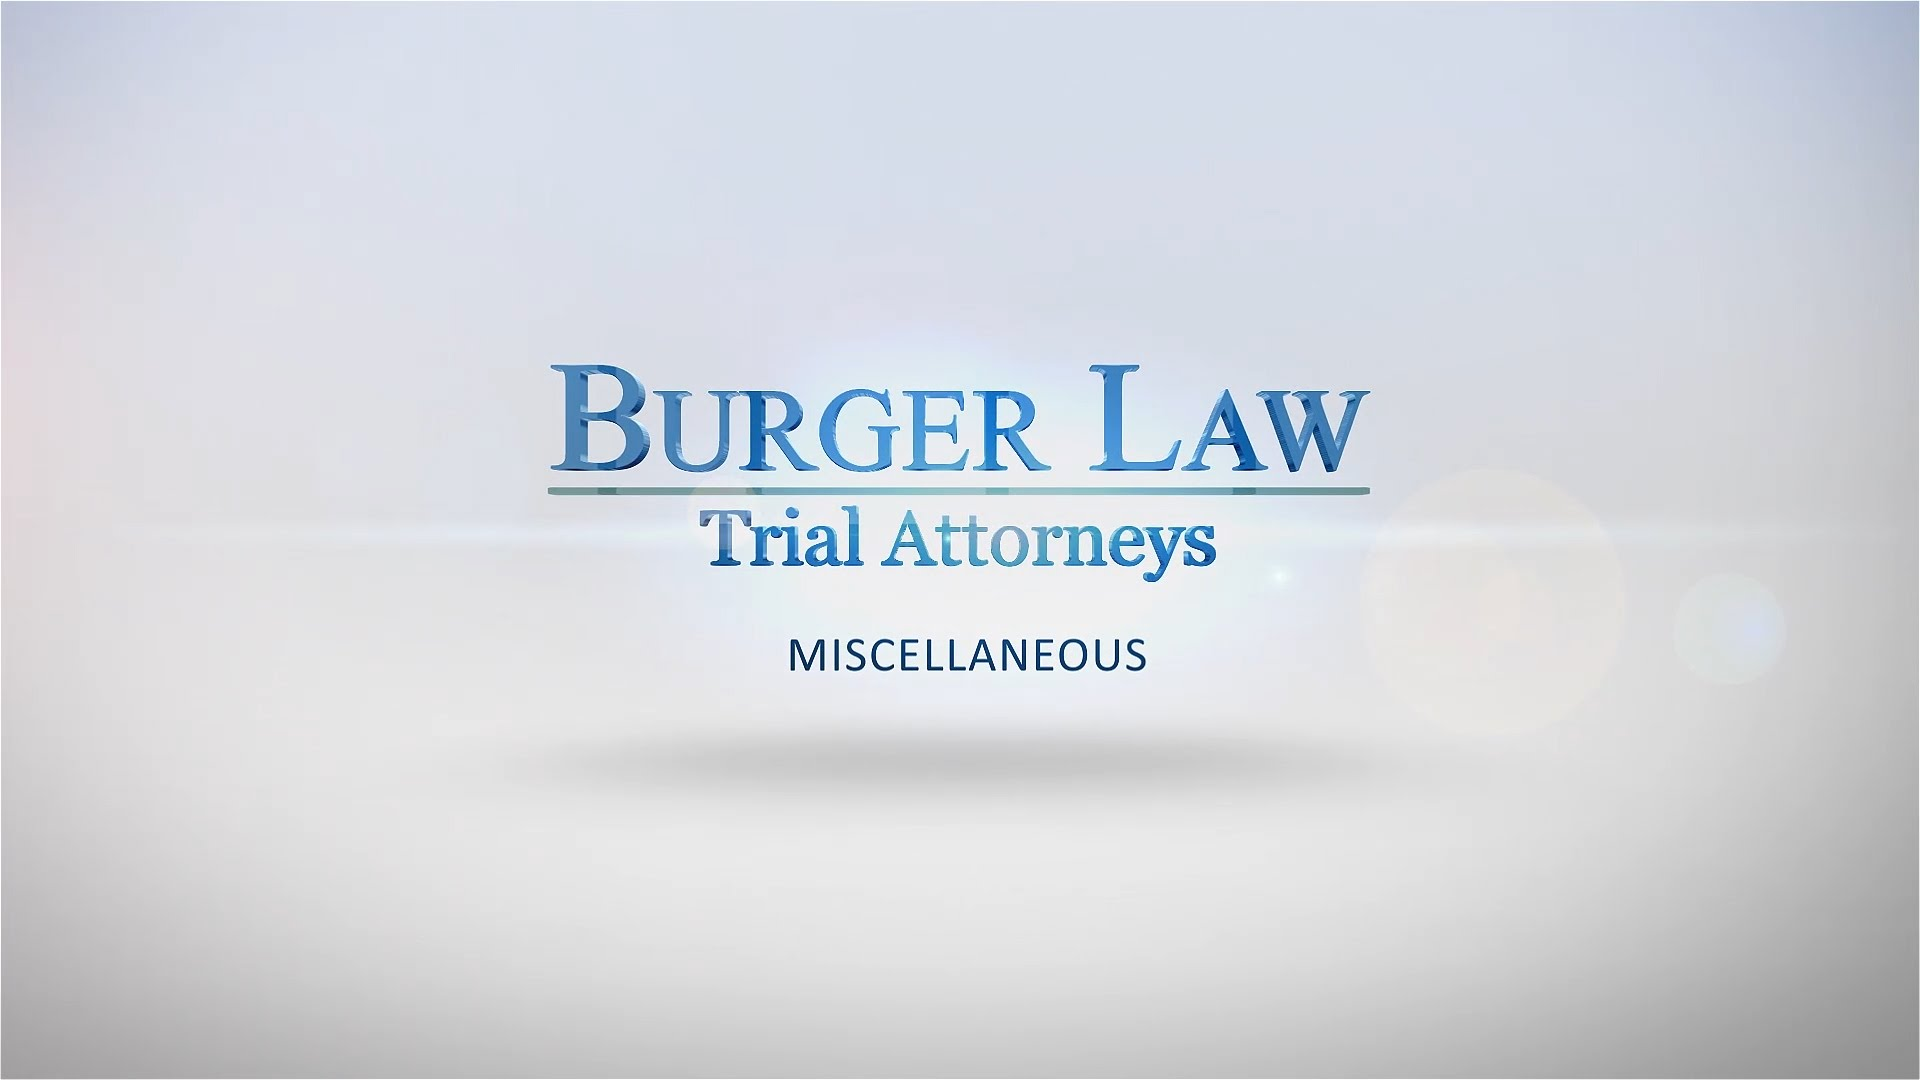 Personal Injury Accident Tips | Personal Injury Attorney in St Louis, MO - BurgerLaw.com